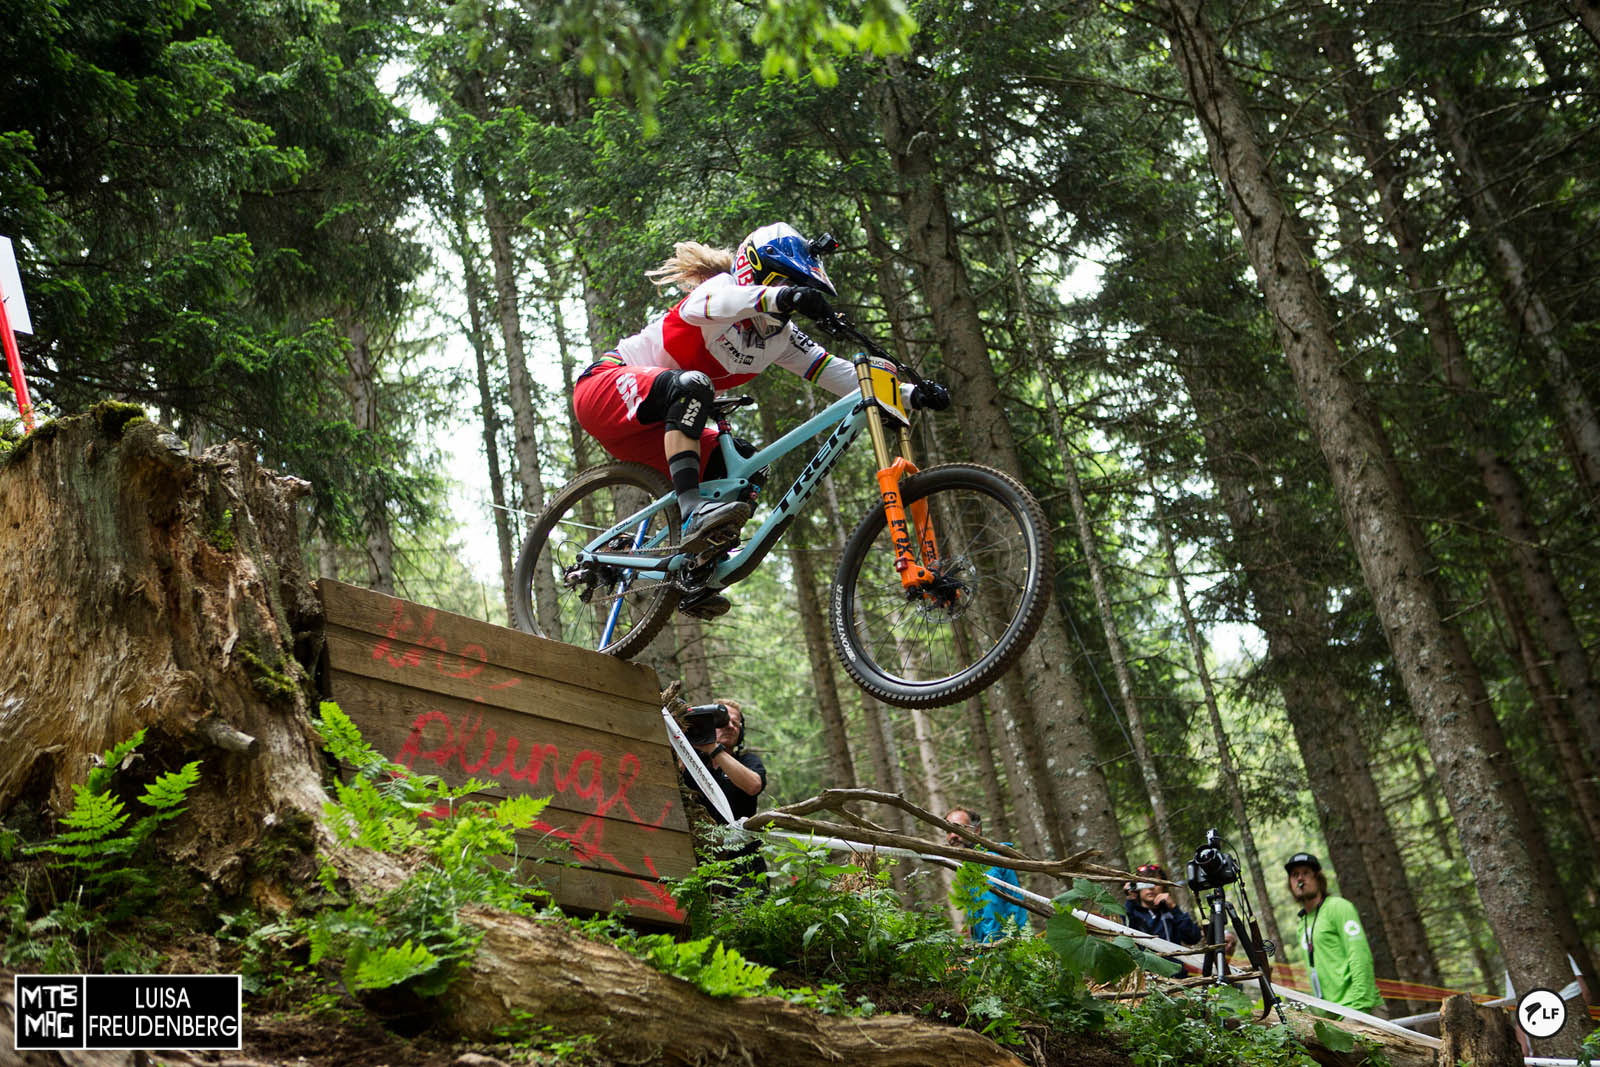 Rachel Atherton might actually have a bit of competition tomorrow with Tahnee Seagrave nipping at her heels.